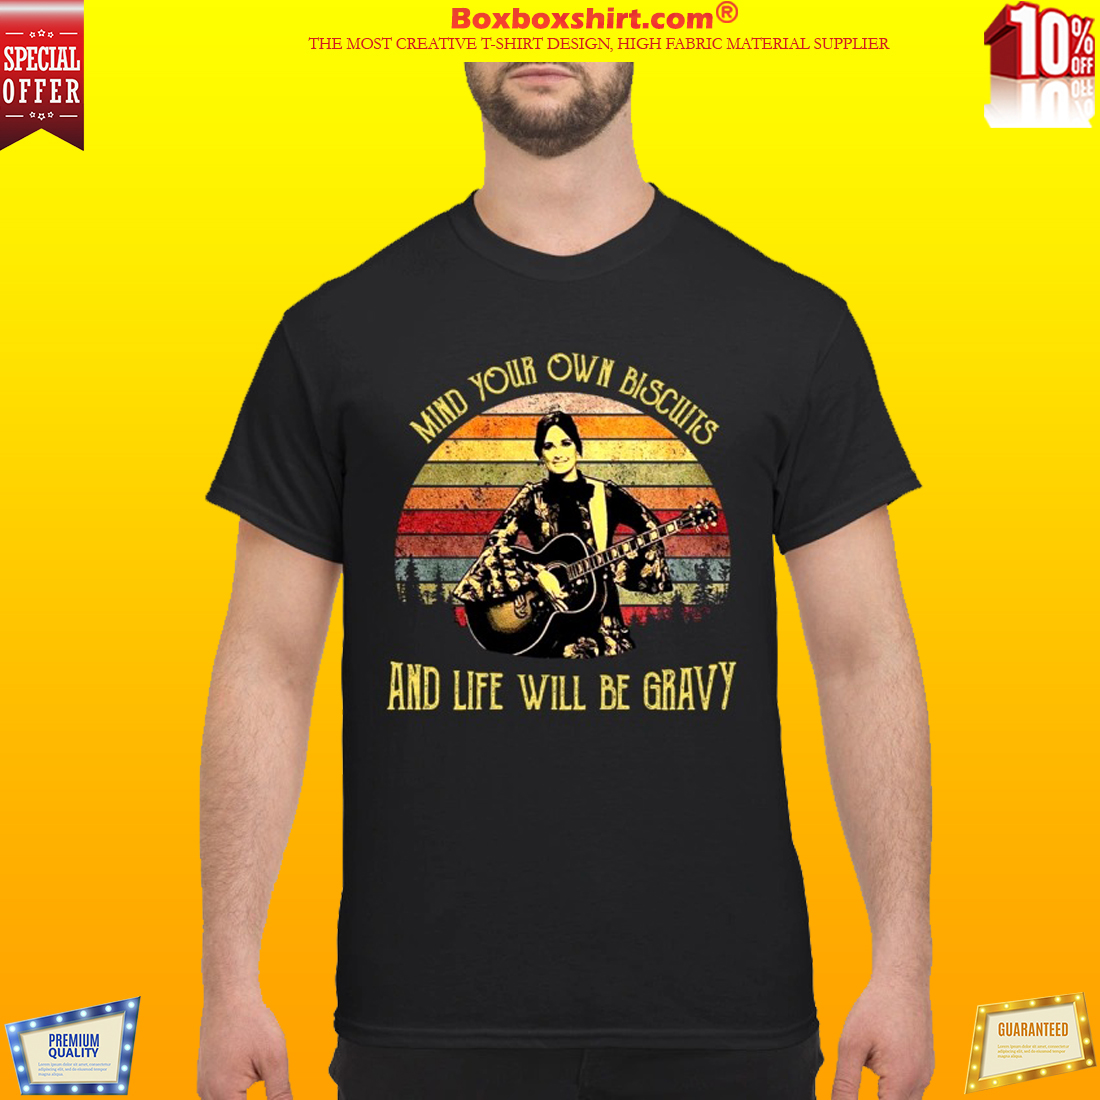 Kacey Musgraves Mind your own biscuits and life will be gravy classic shirt